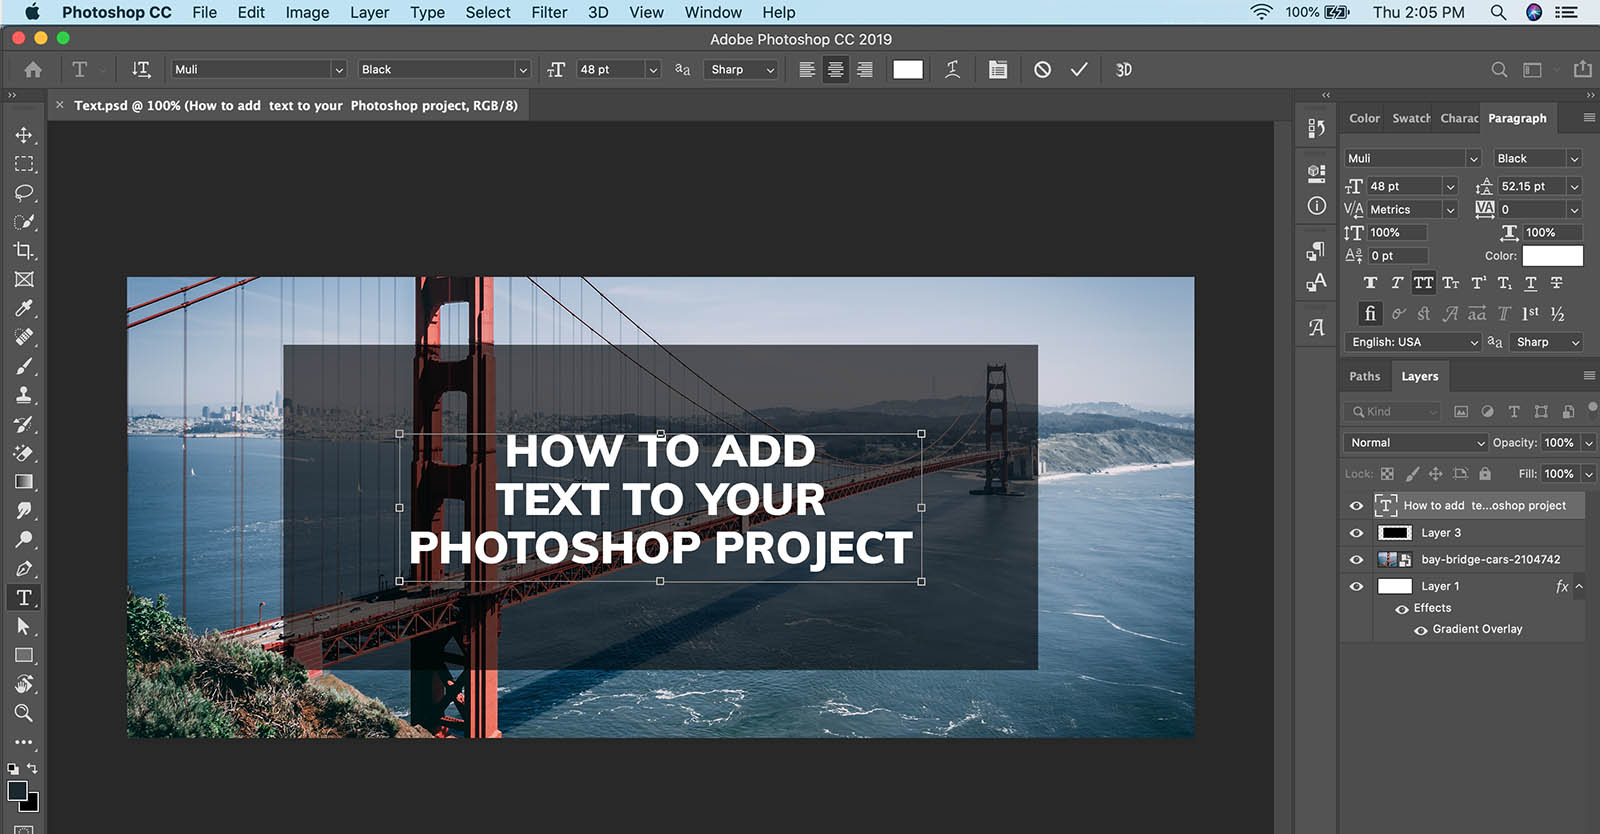 How to add text in Photoshop